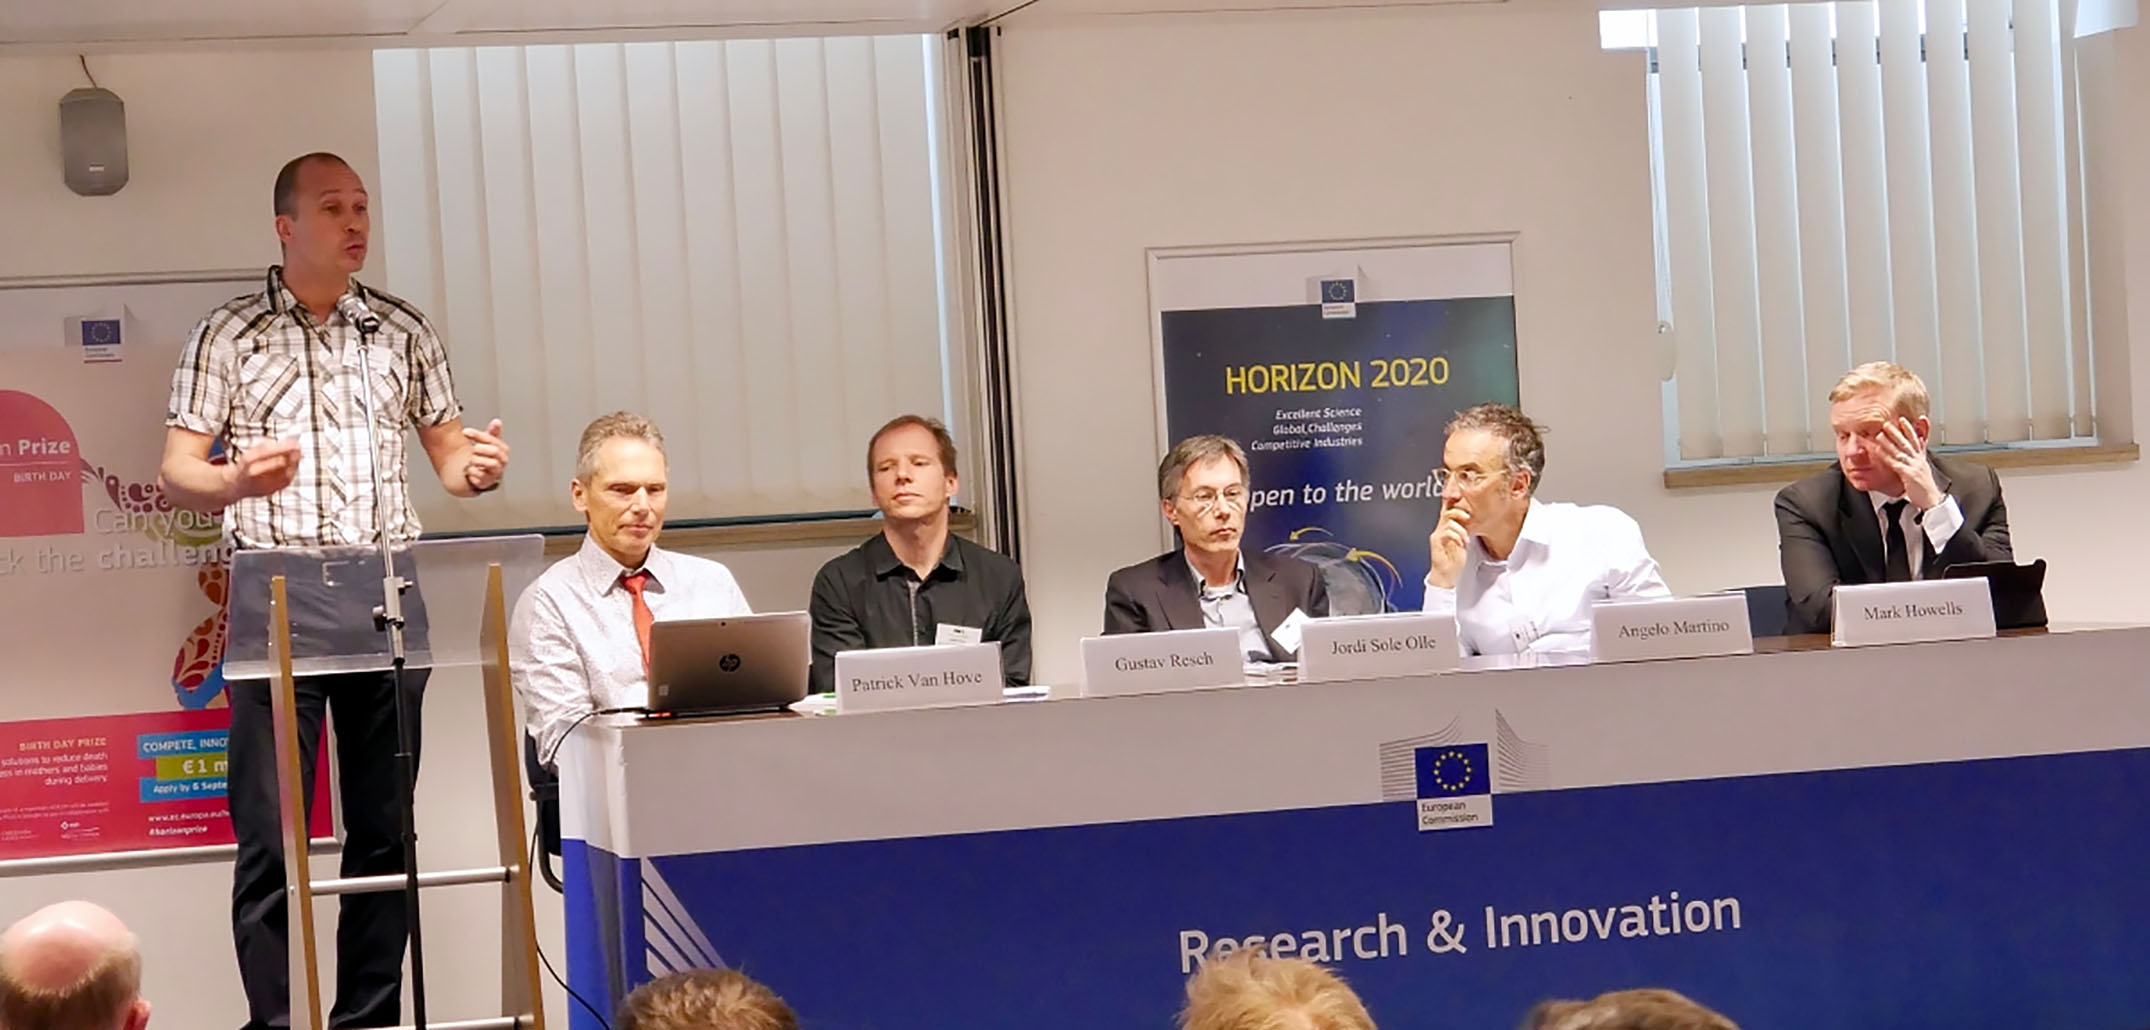 Panel discussion on insights from the Horizon2020 decarbonization projects. From the left: Ruud Egging, Patrick Van Hove, Gustav Resch, Jordi Sole Olle, Angelo Martino and Mark Howells